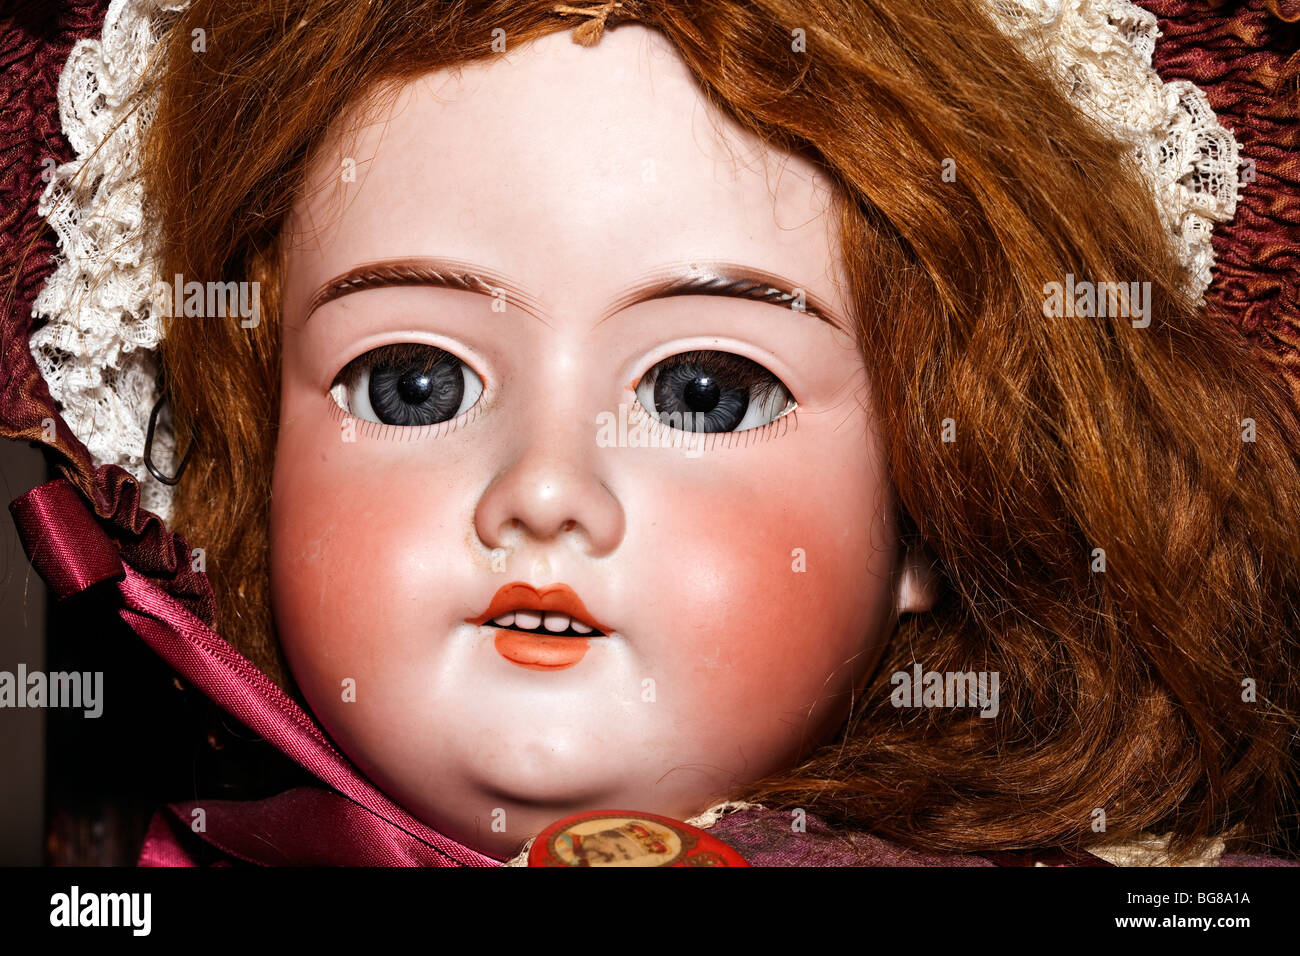 Arabella is a charming vintage bisque head doll from the Armand Marseille factory in Thuringia. - Stock Image